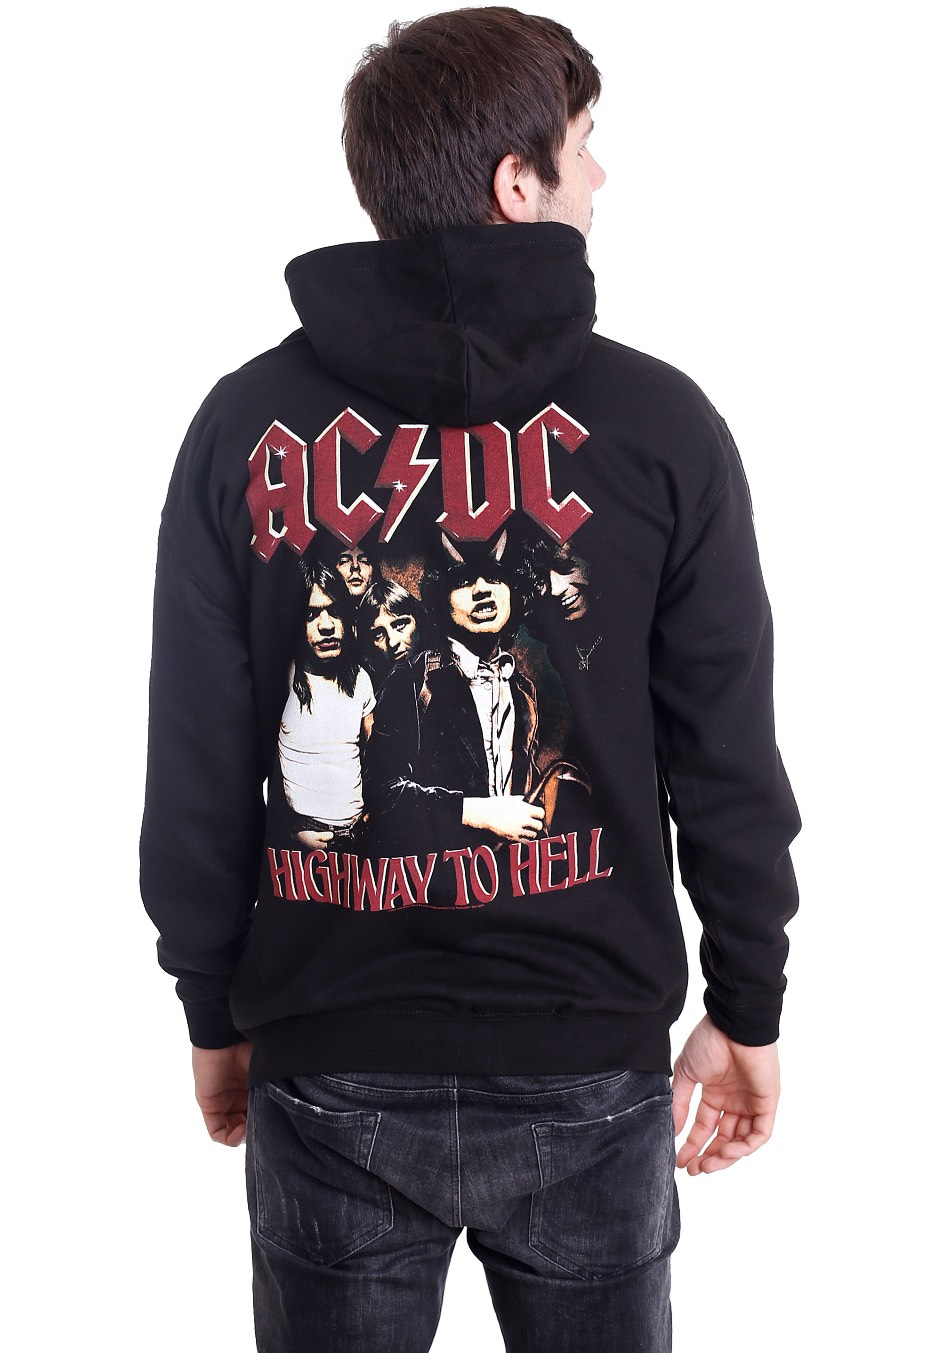 AC/DC - Highway To Hell - Zipper - Official Hard Rock ...